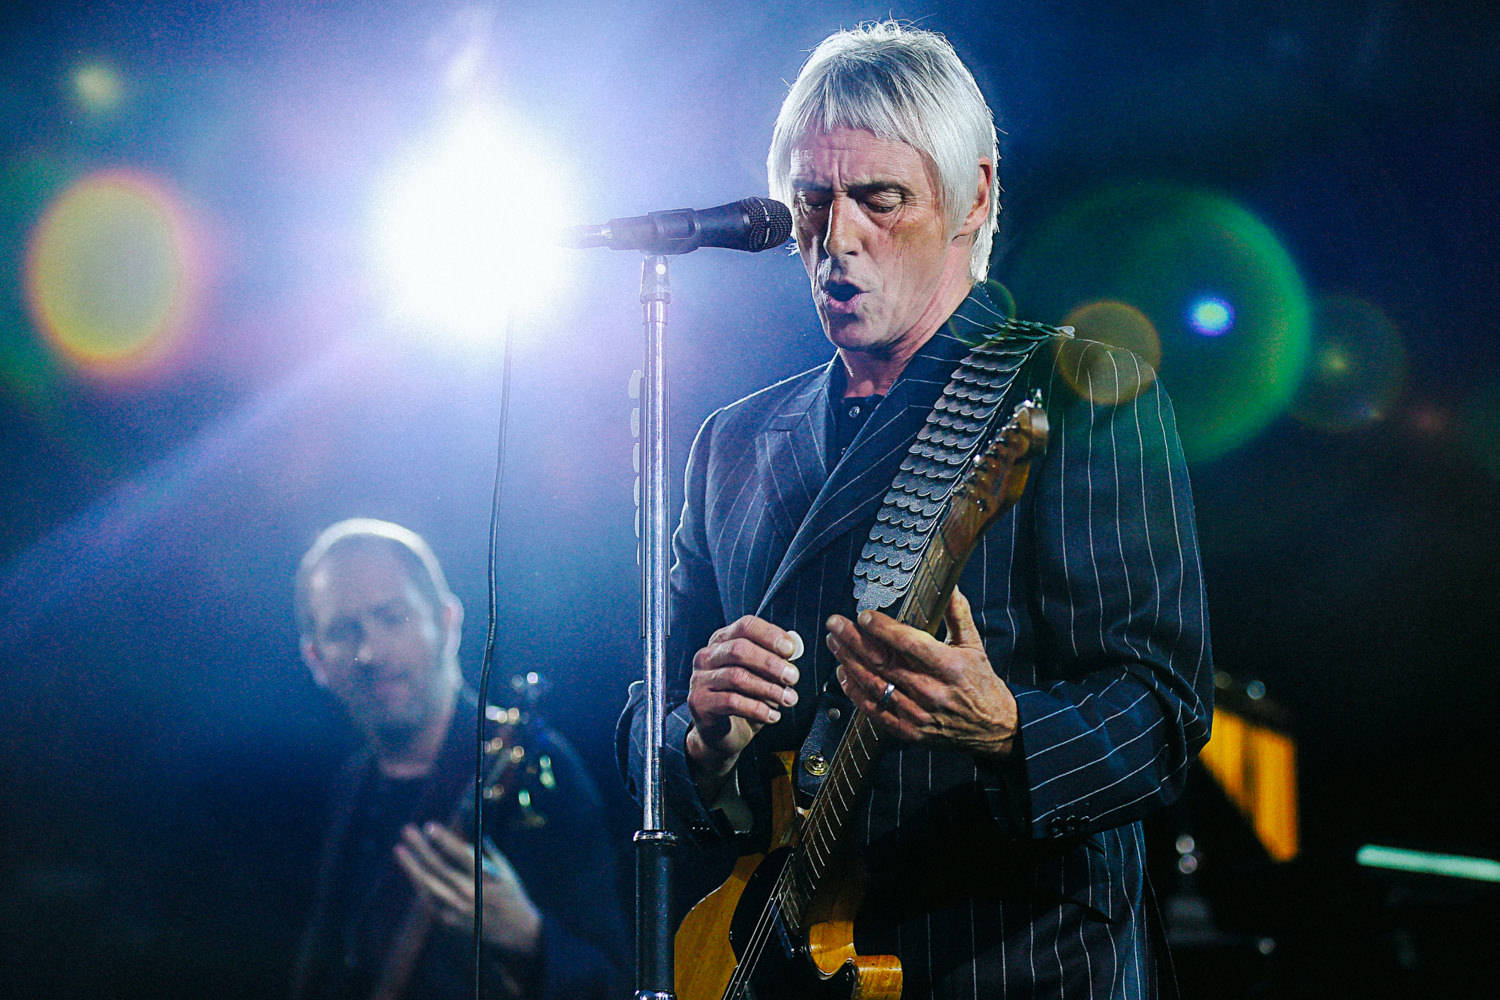 Paul Weller - Celebrity photographer Wes Simpson